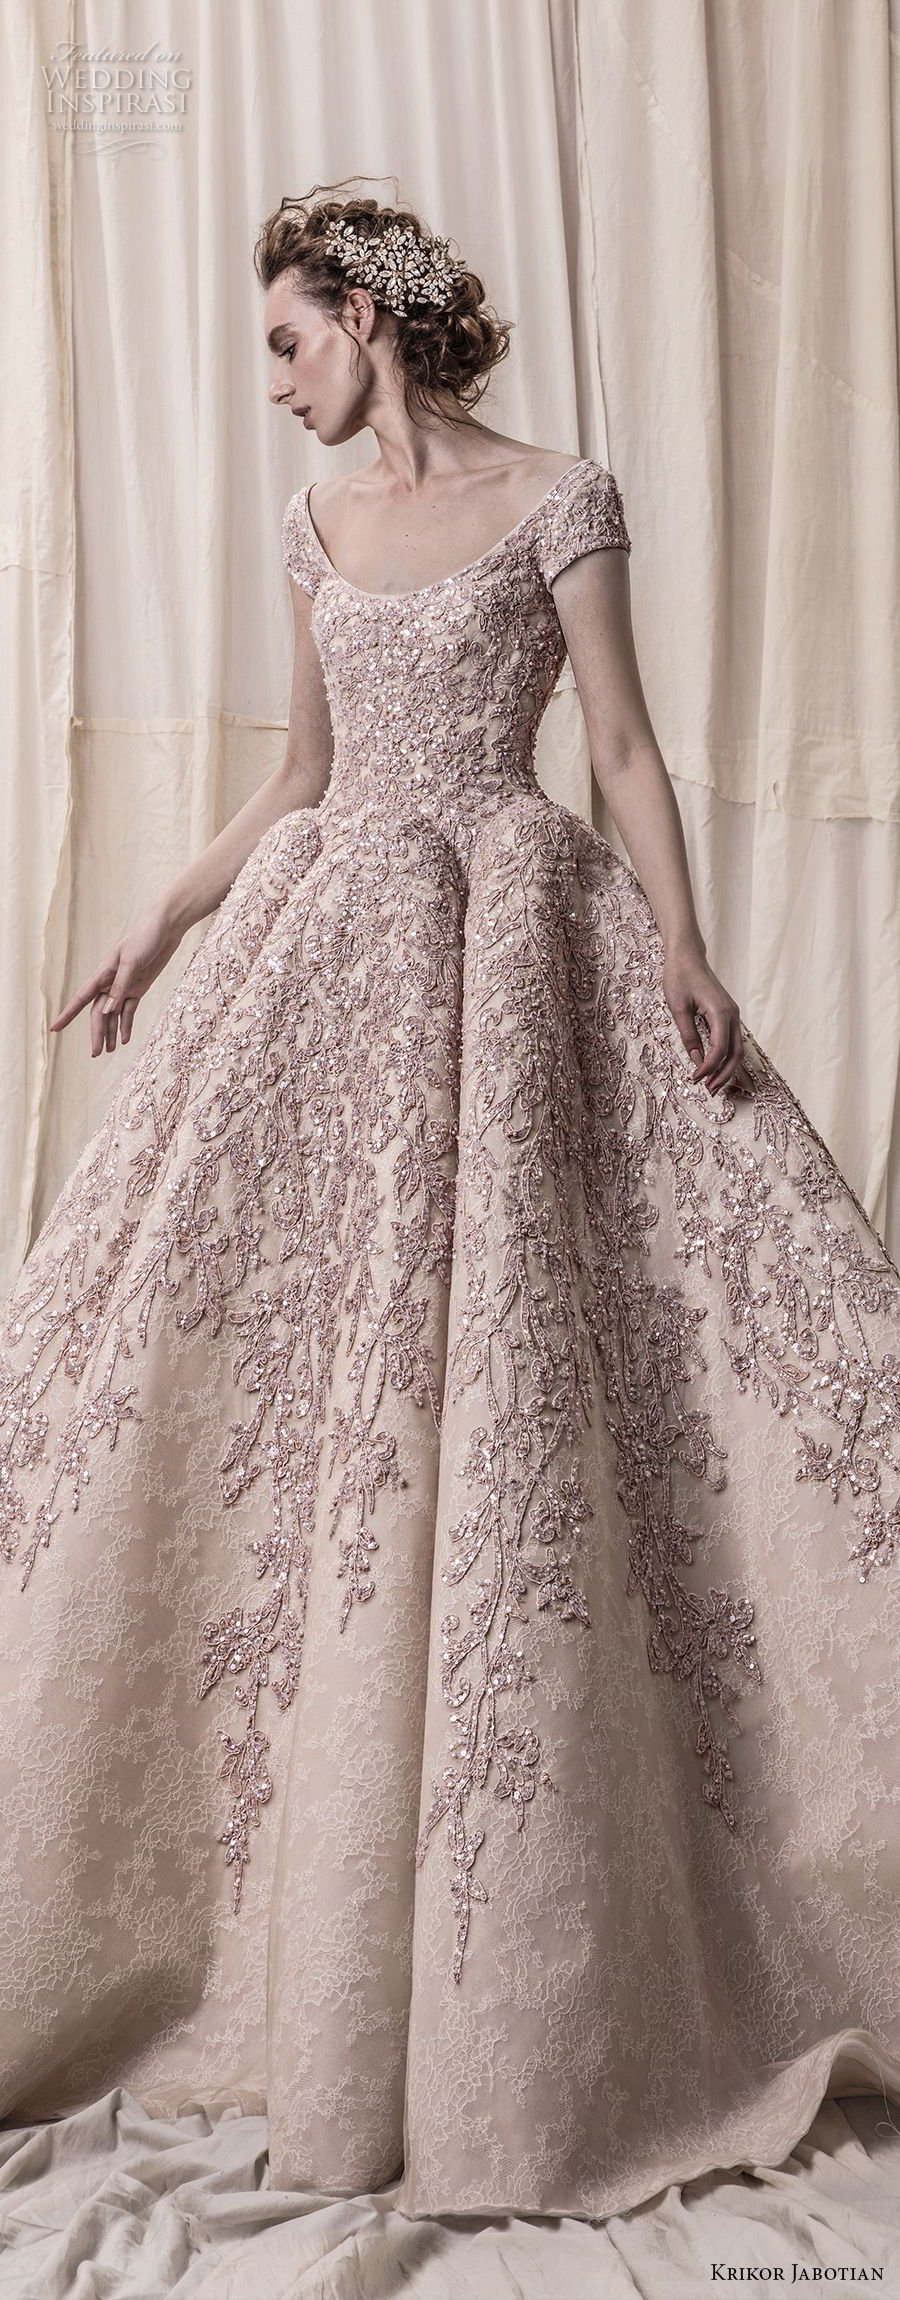 Disney Princess Wedding Dress Belle